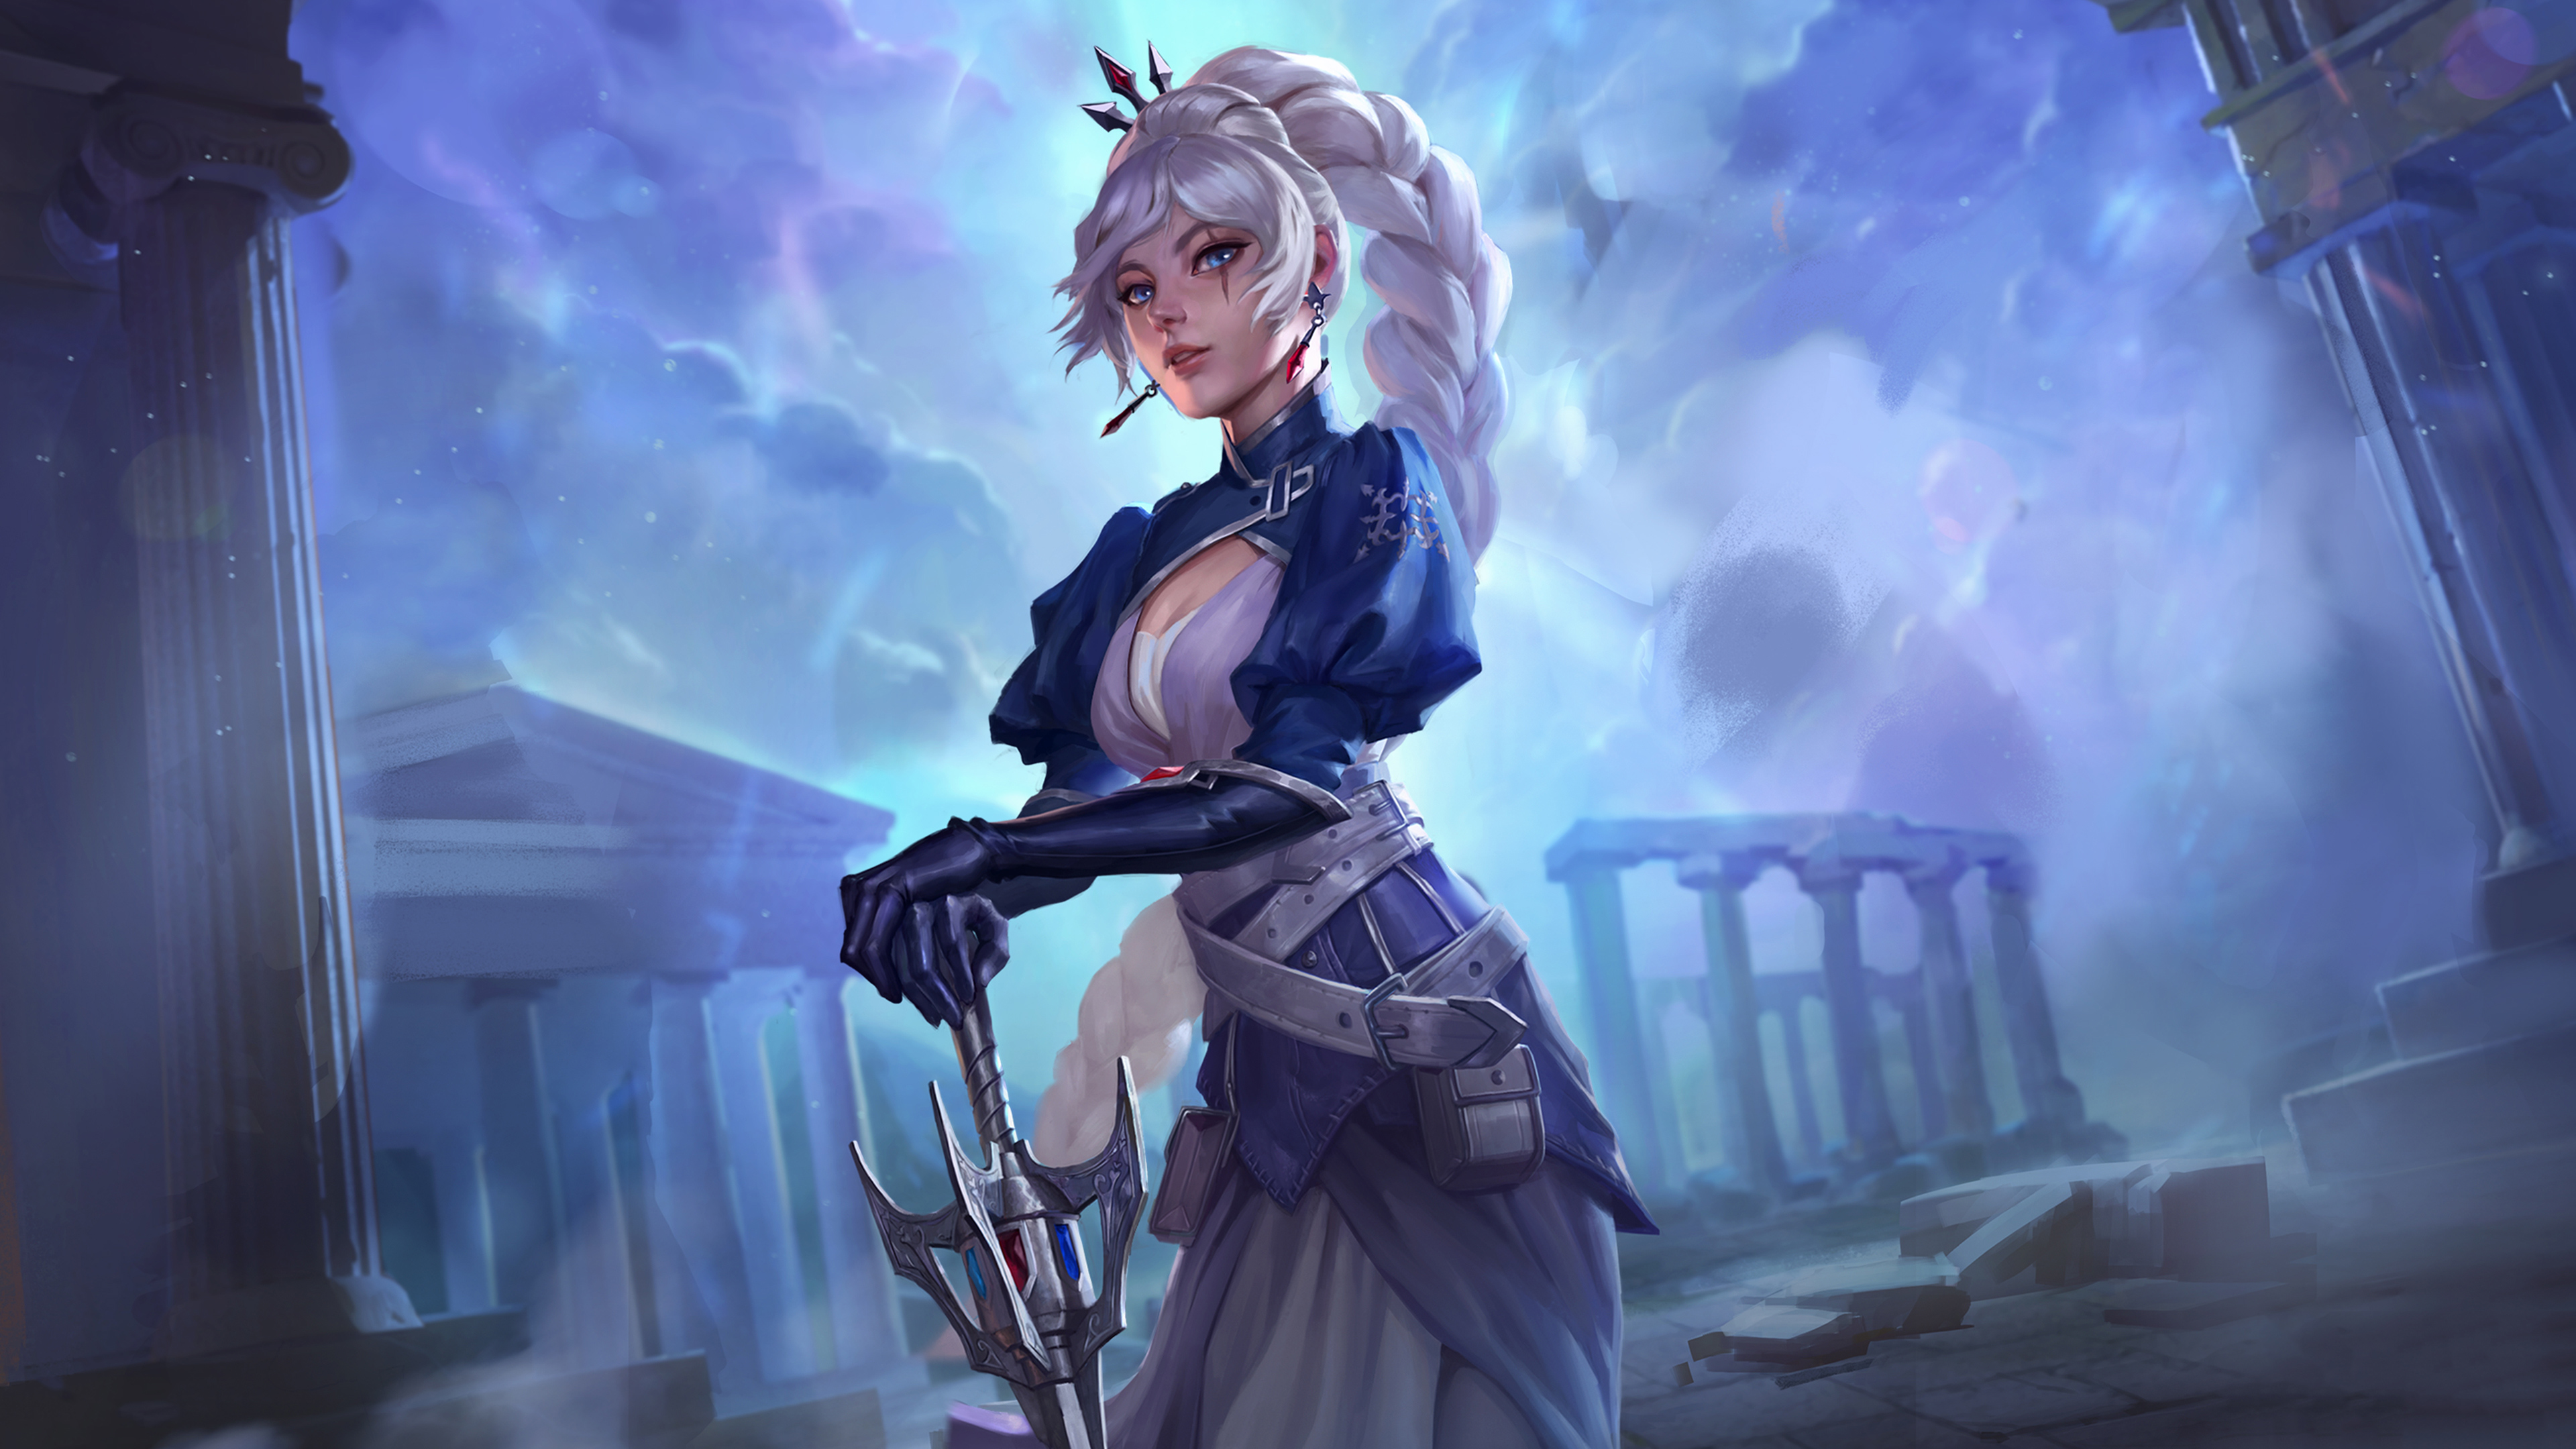 Freya Smite 4k Hd Games 4k Wallpapers Images Backgrounds Photos And Pictures